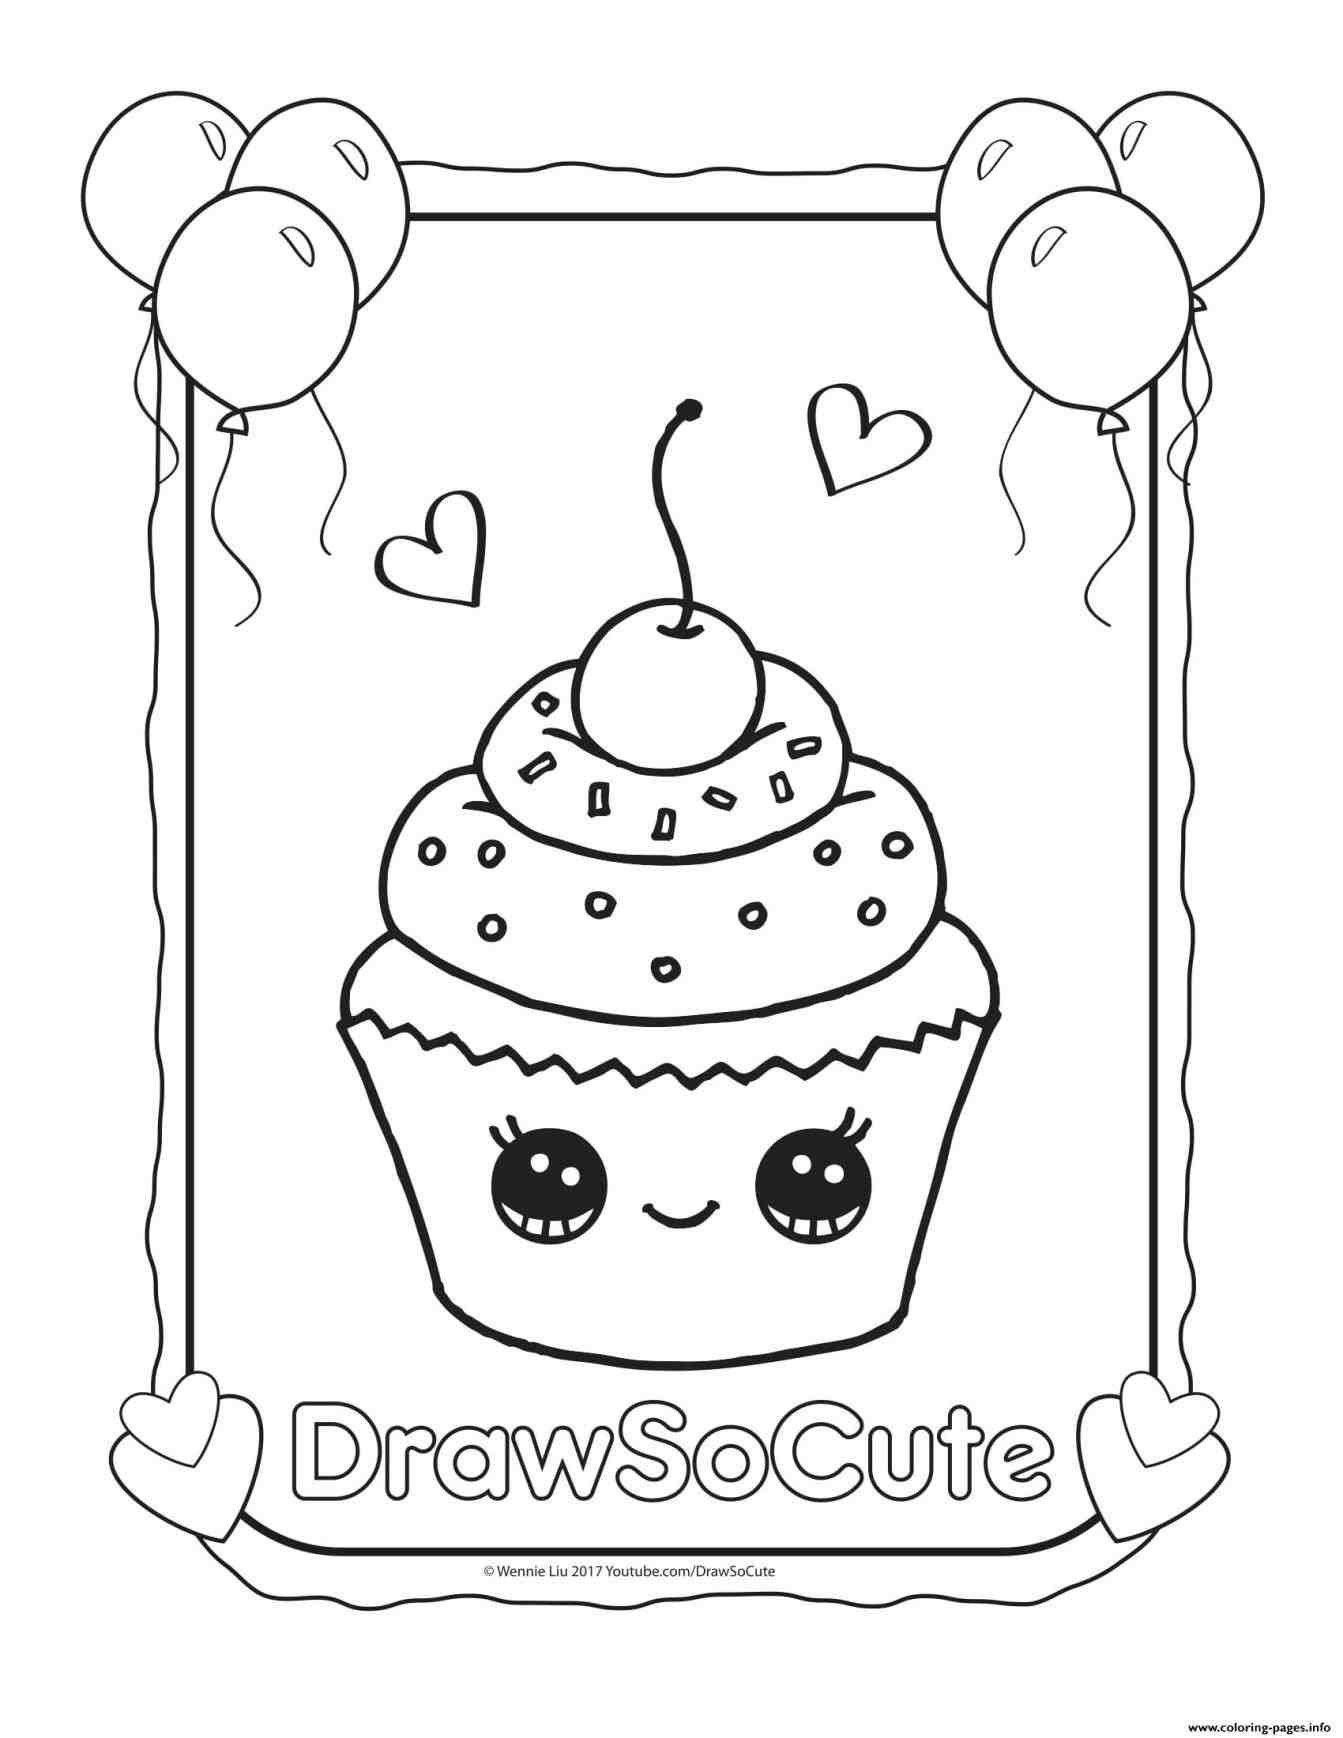 Excellent Image of Starbucks Coloring Page - davemelillo.com